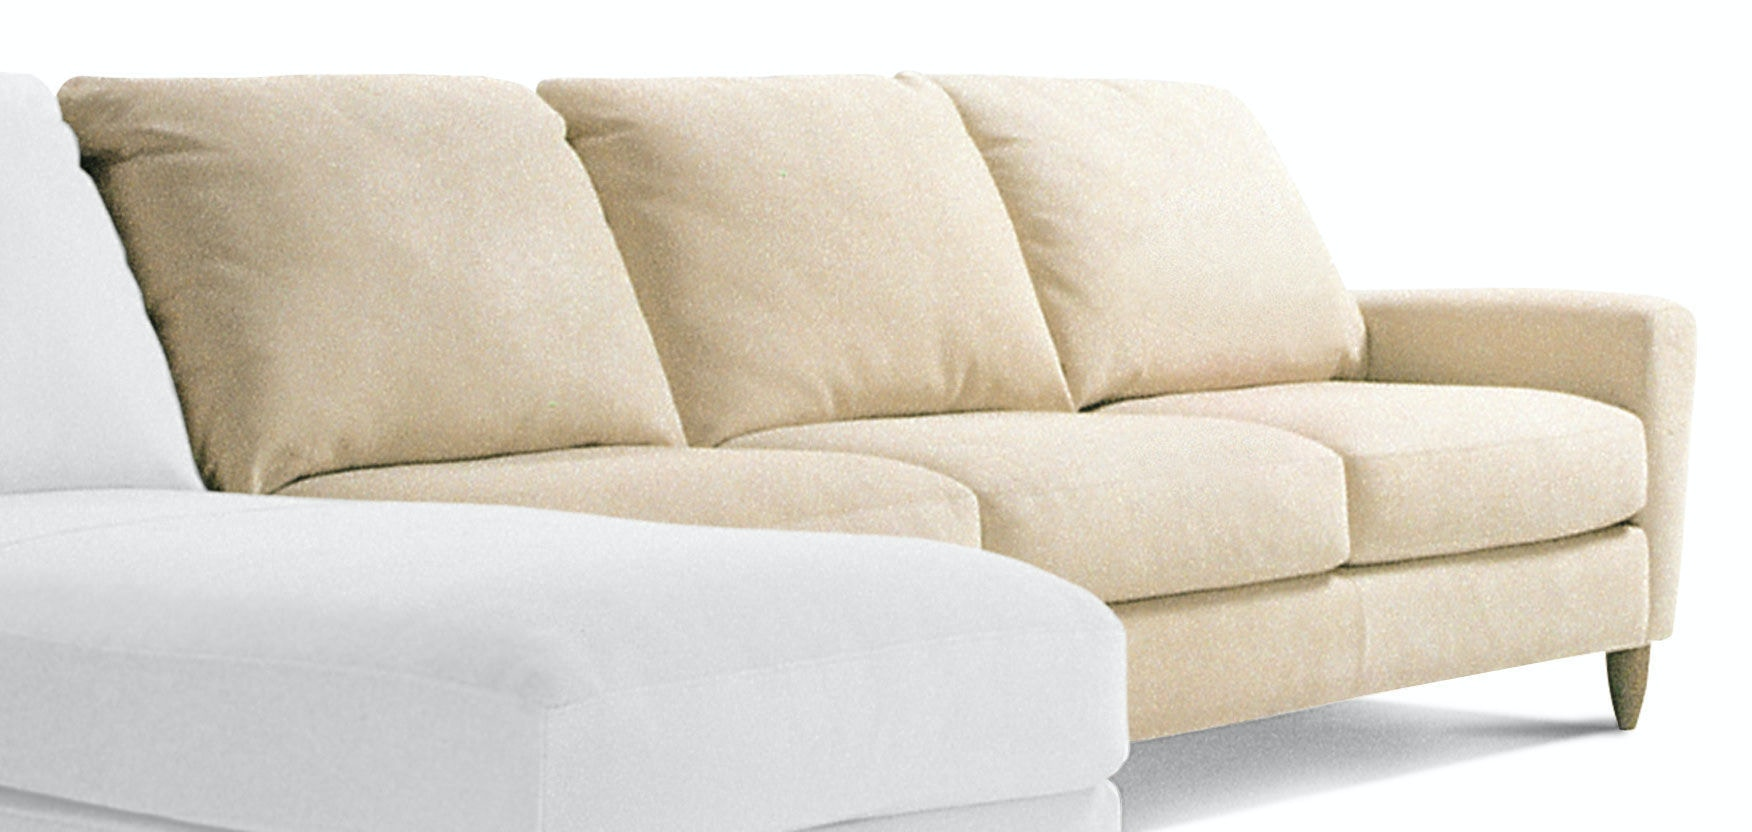 Superb American Leather Left Arm Seating Sofa BEN SO3 LA From Walter E. Smithe